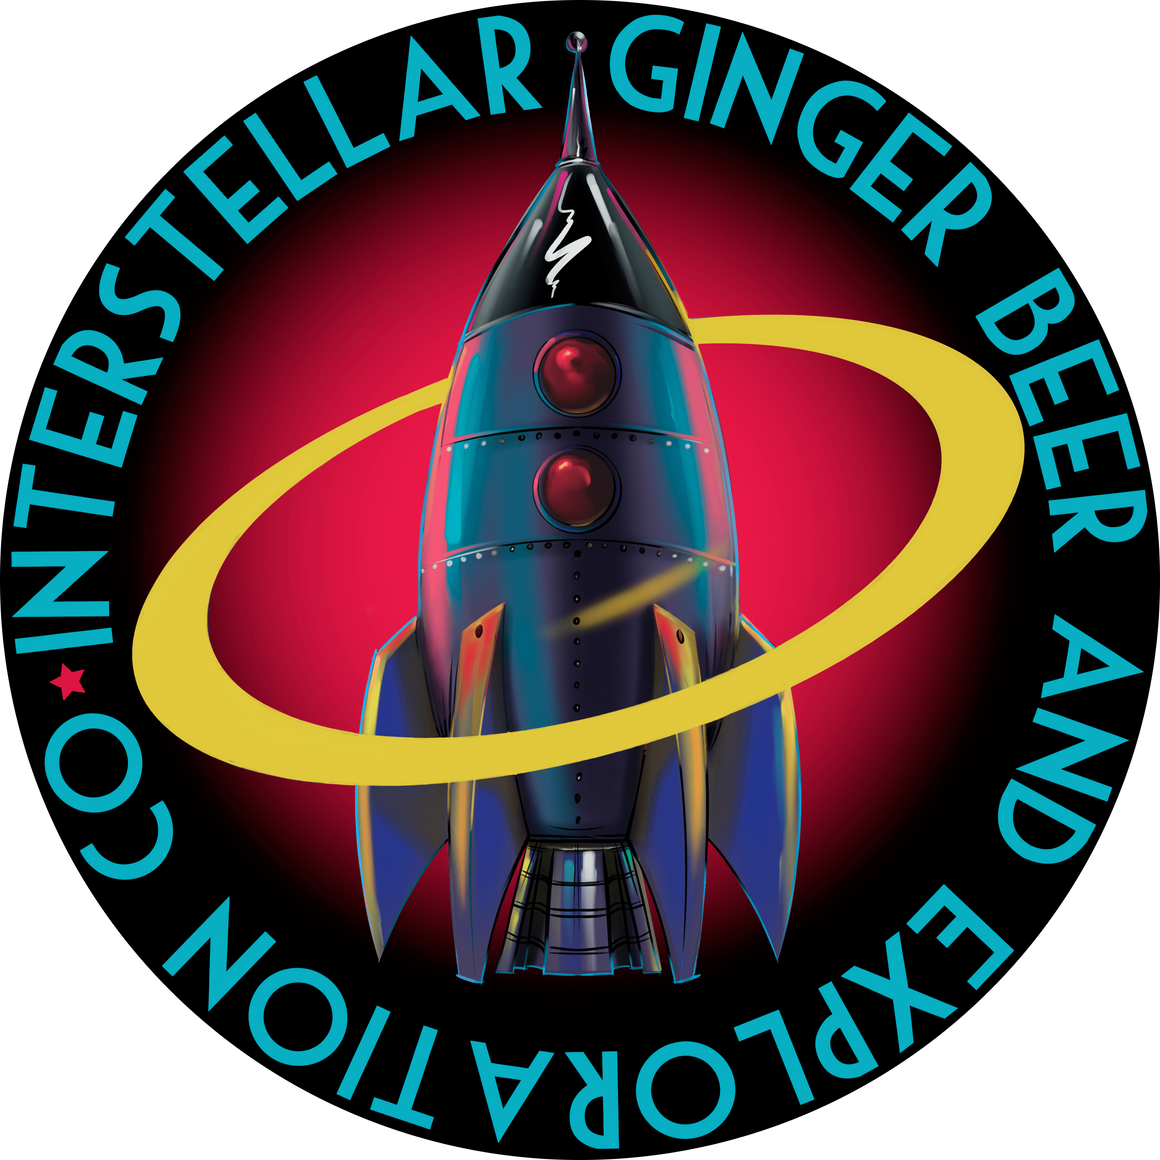 Bud-Busch Craft Beer Default-Title 12. Interstellar Sunspot Ginger Beer 4pk